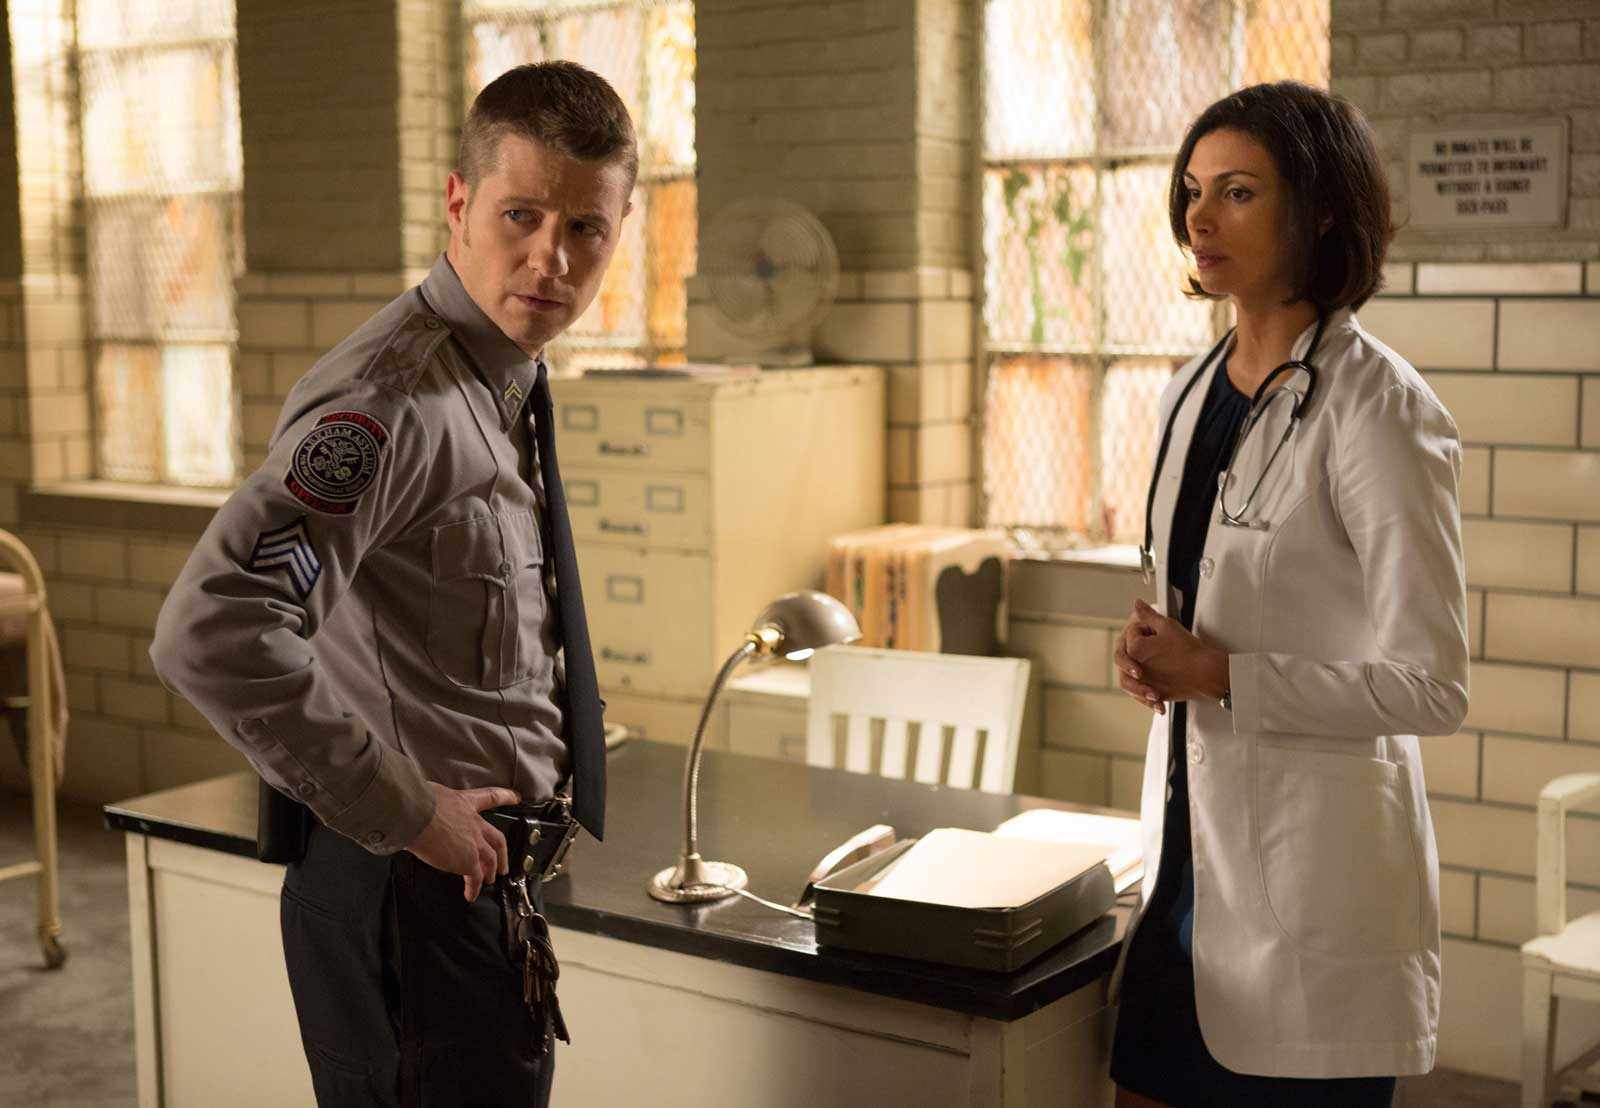 Ben McKenzie as James Gordon and Morena Baccarin as Leslie Thompkins in Gotham: Rogues' Gallery.